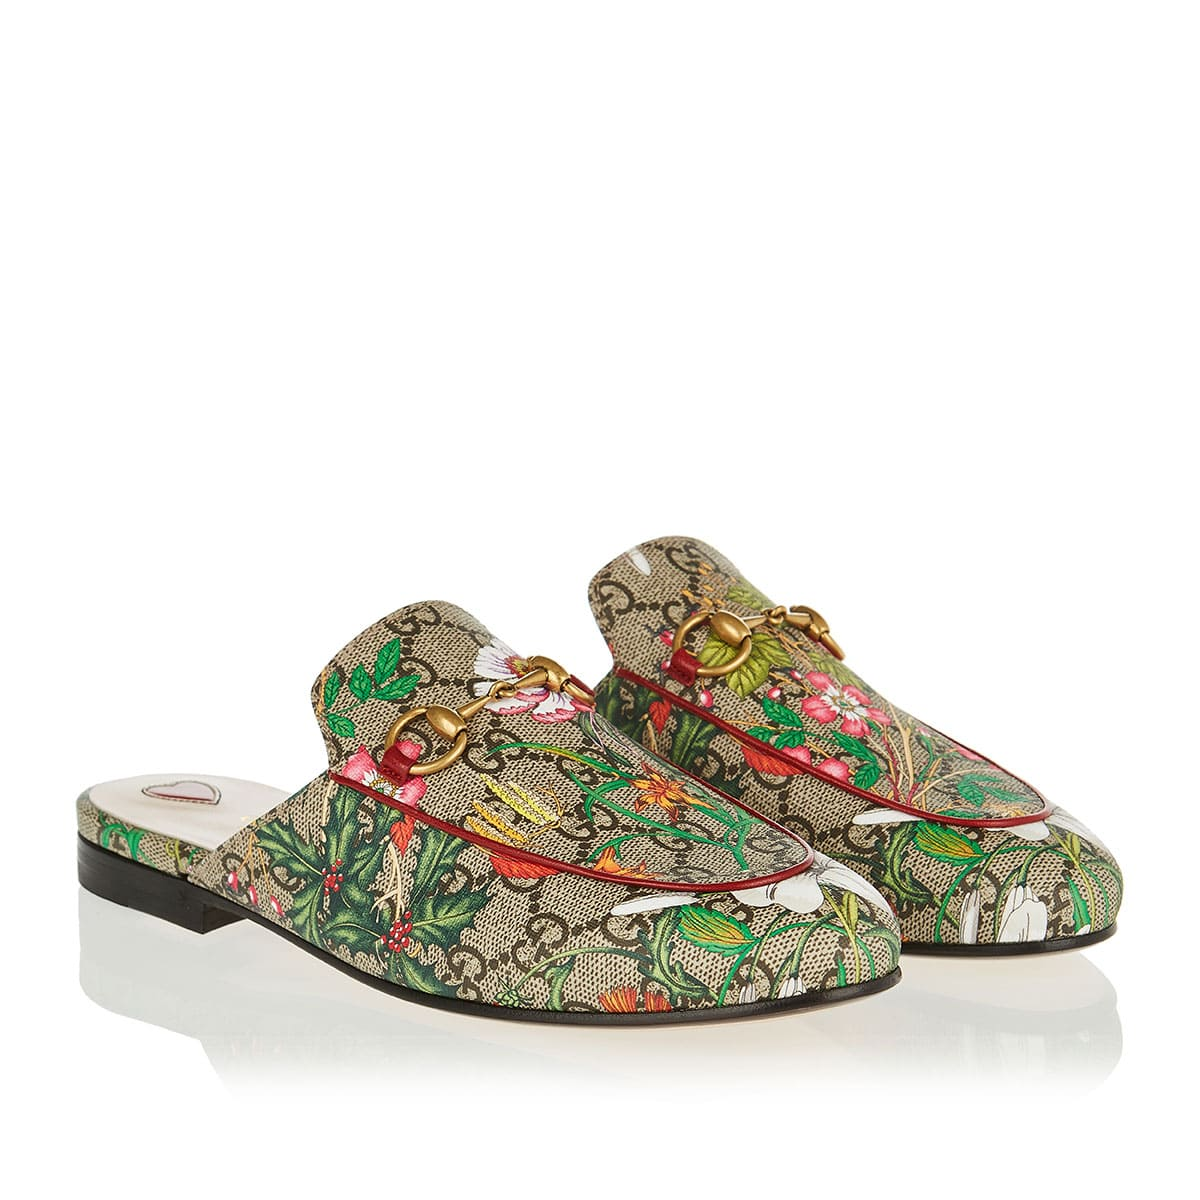 Princetown GG Flora slippers